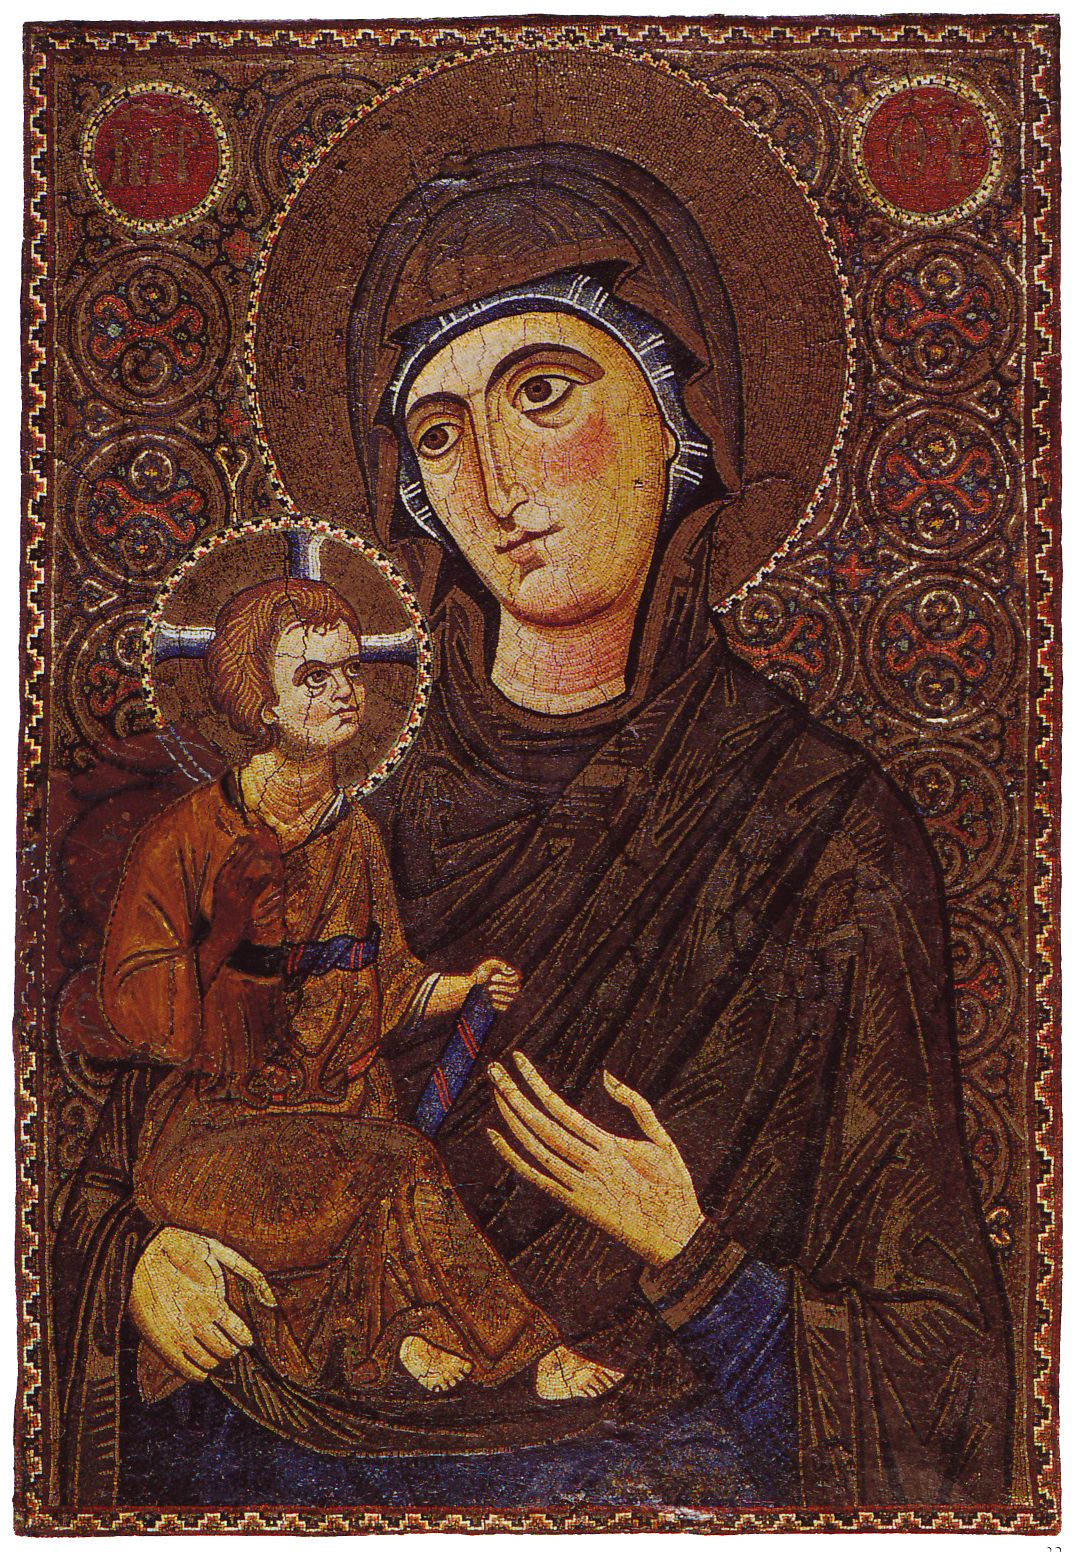 Mary_&_Child_Icon_Sinai_13th_century.jpg (1077×1552)